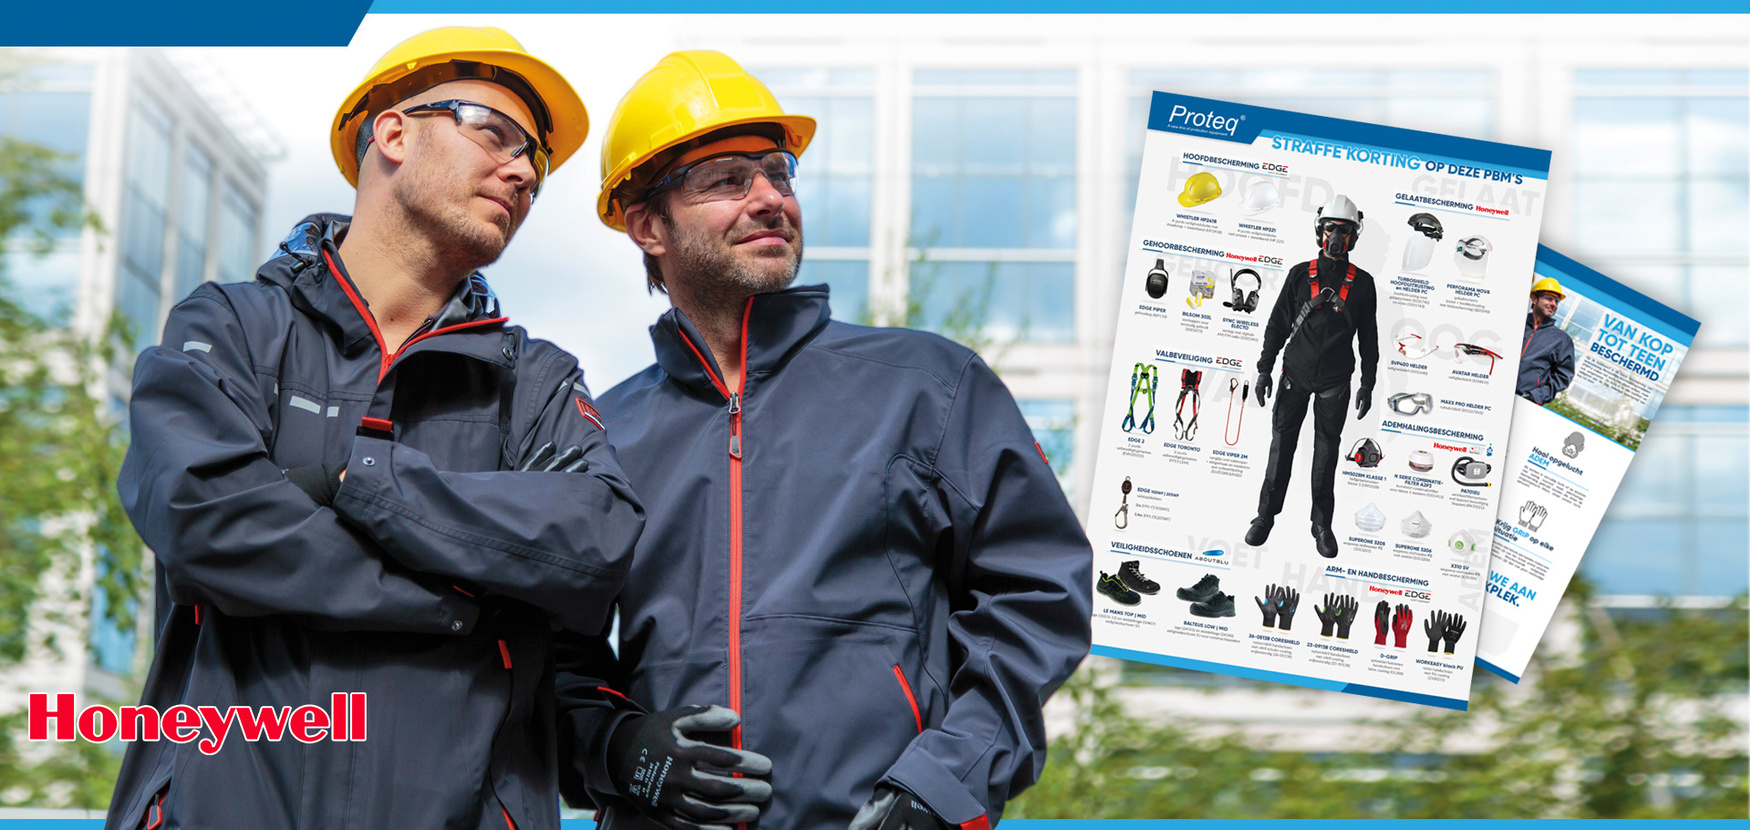 Shop <br/><br/>PROTECTED<br/>FROM HEAD<br/>TO TOE - #Discover our PPE solutions